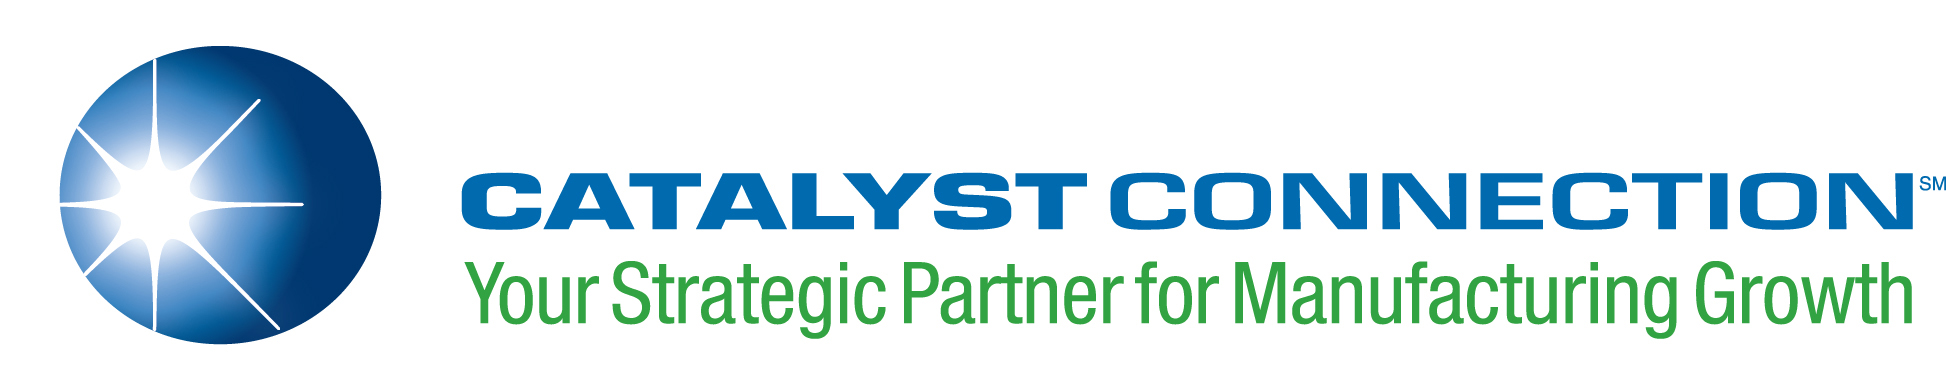 Copy_of_Catalyst_Connection_Logo_2016_JPG.jpg